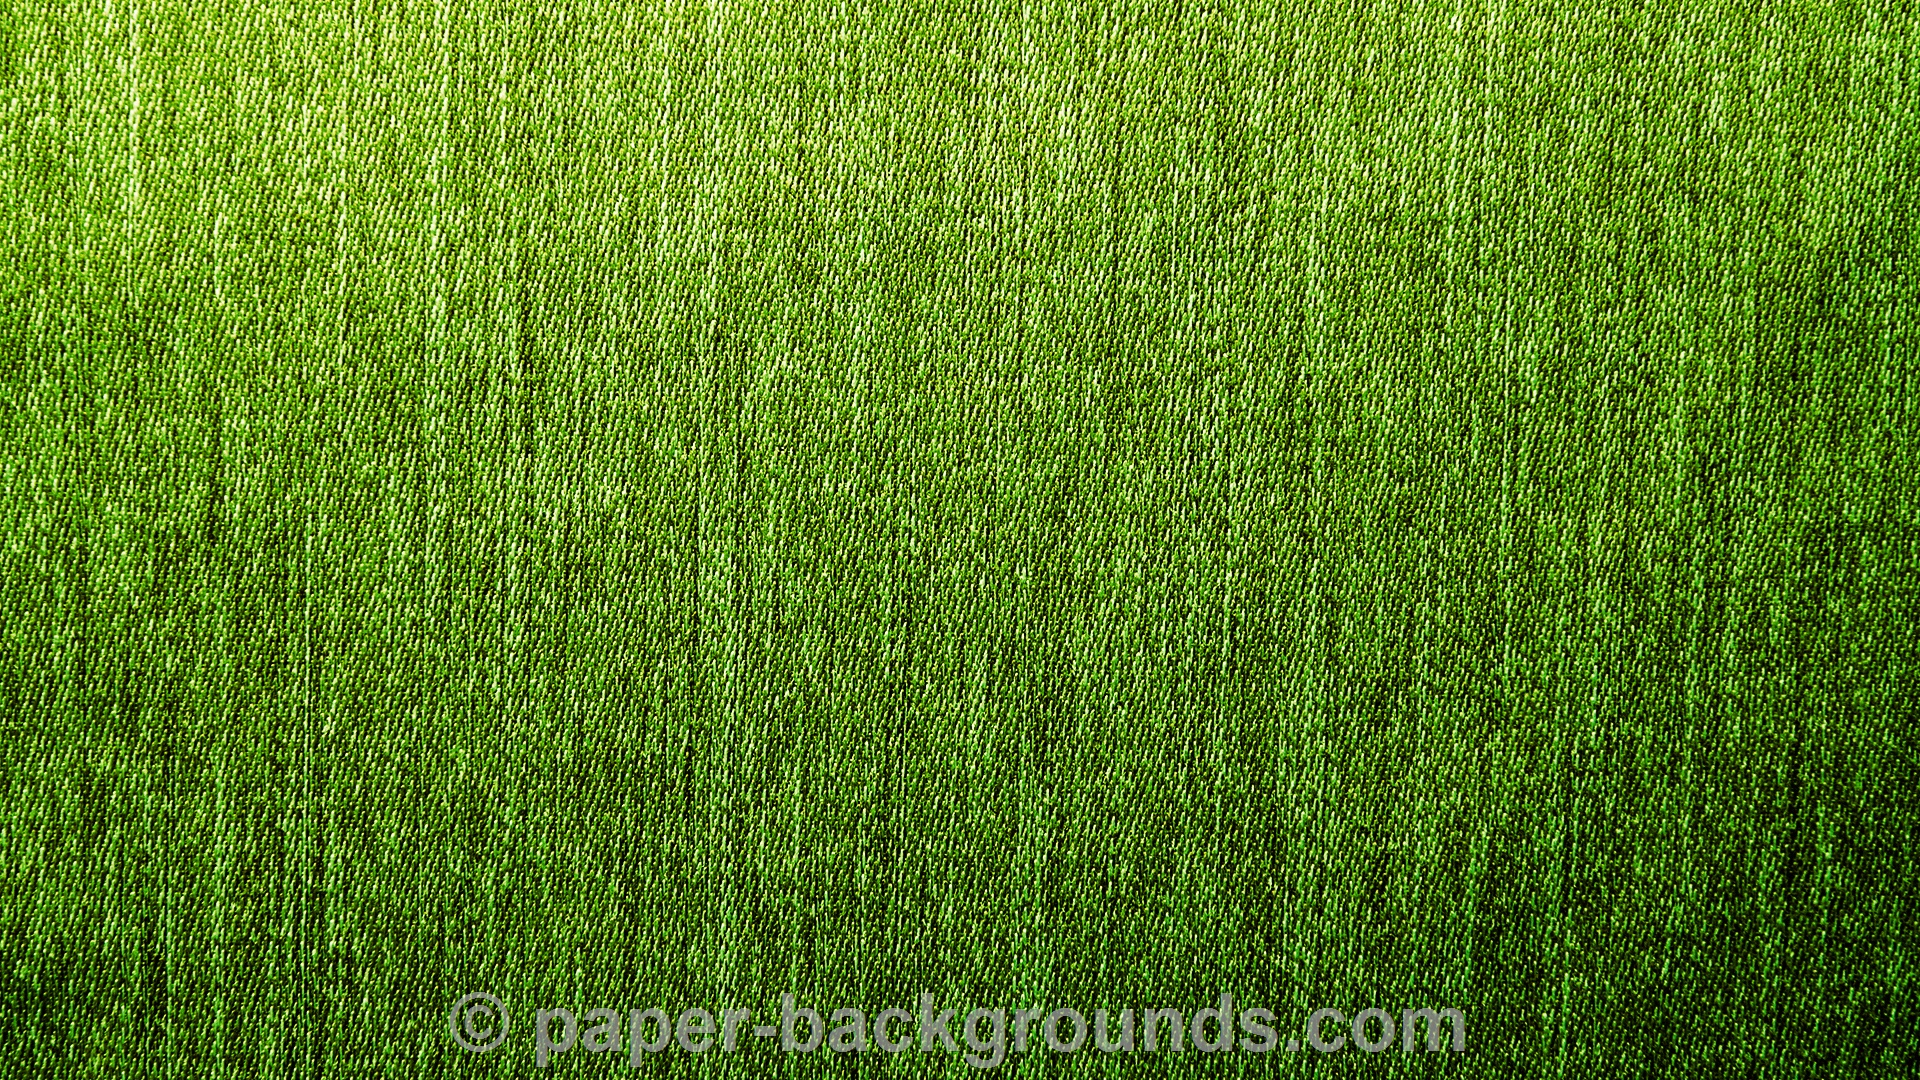 Green Canvas Texture Background HD